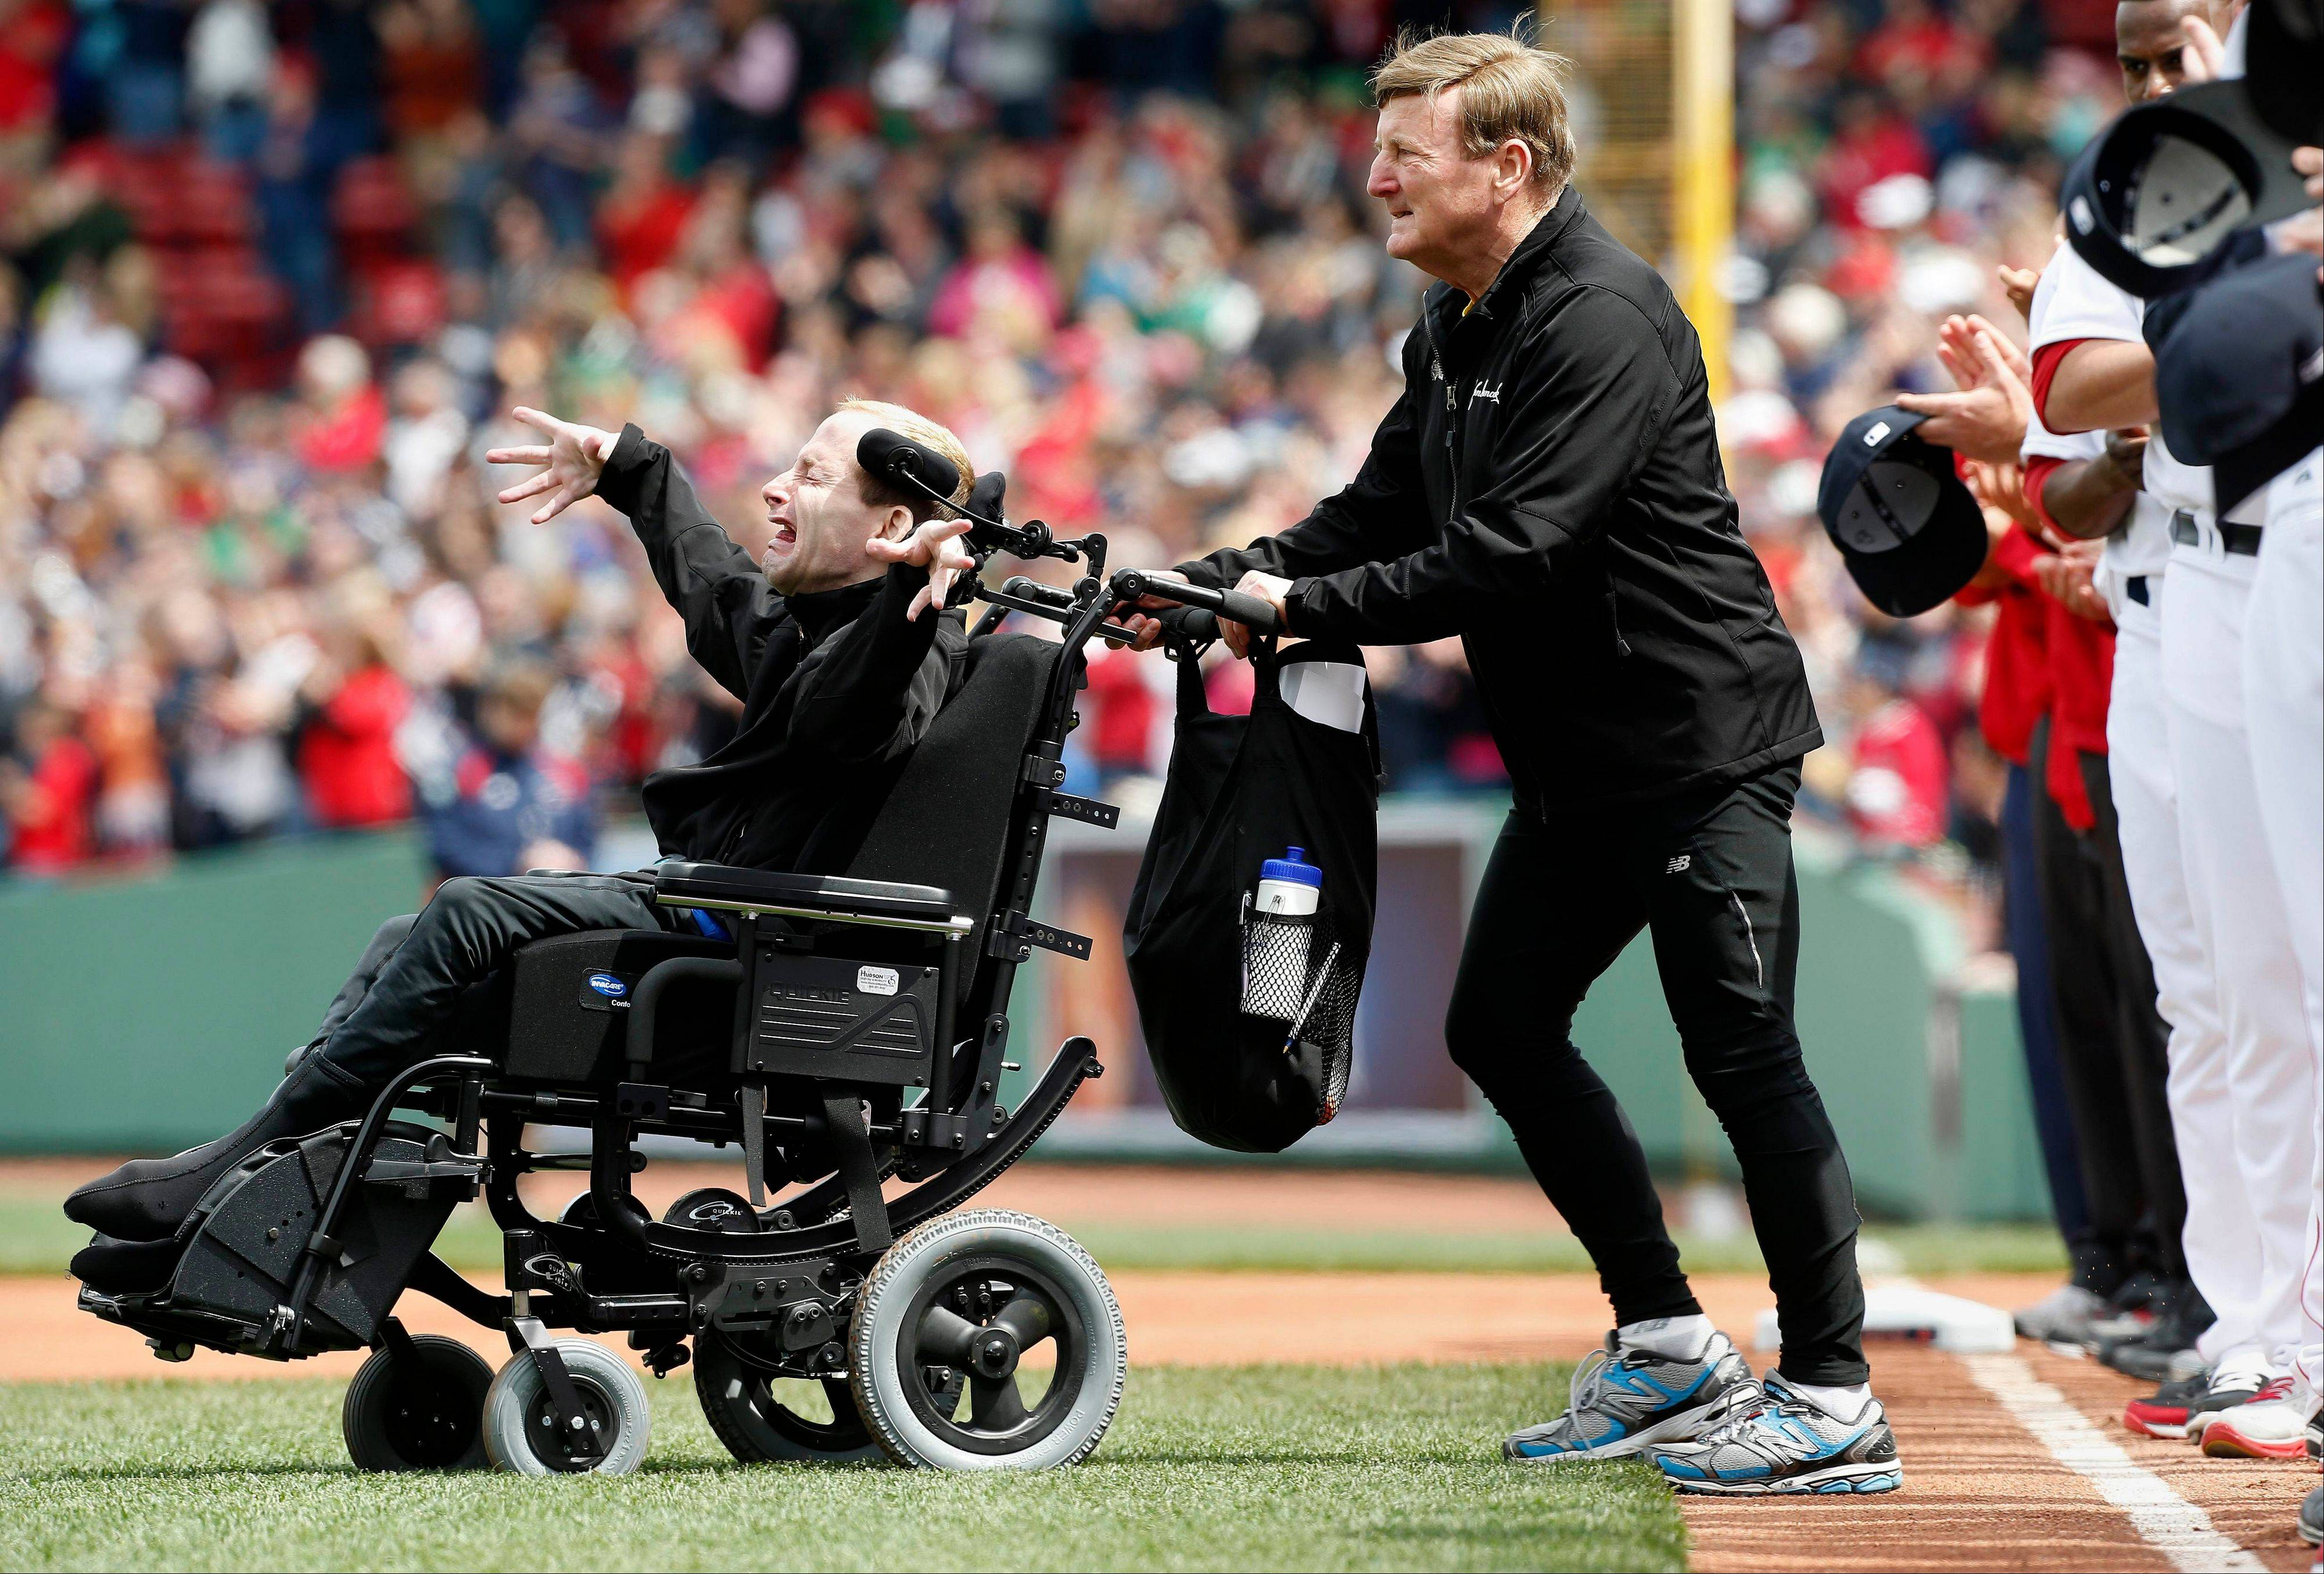 Marathoners Dick Hoyt, right, and his son Rick come onto the field for the ceremonial first pitch before a baseball game between the Boston Red Sox and the Kansas City Royals in Boston, Saturday, April 20, 2013. Playing at home for the first time since two explosions at the Boston Marathon finish line killed three people and wounded more than 180 others, the Red Sox honored the victims and the survivors with a pregame ceremony and an emotional video of scenes from Monday's race.